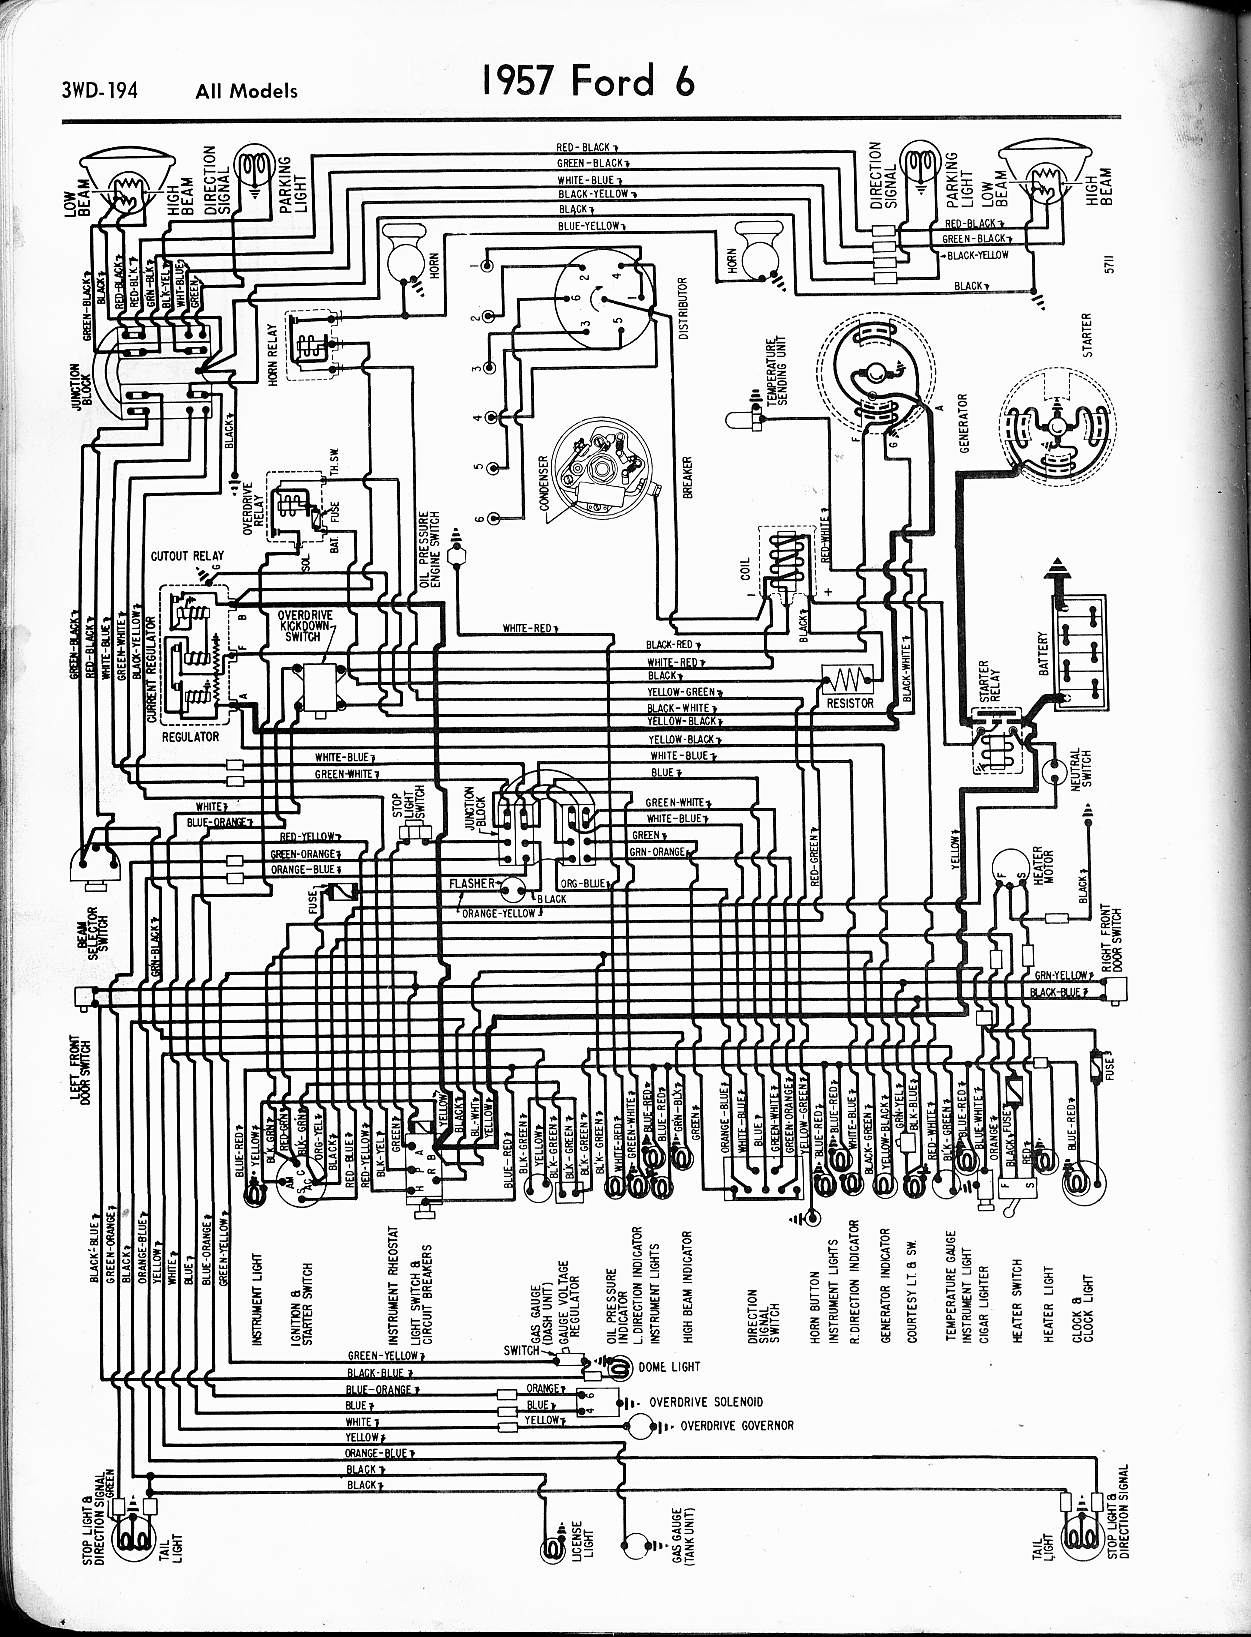 56 ford fairlane wiring diagram the coil resistor on a 56 ford was missing on the car i ... 1959 ford fairlane wiring diagram